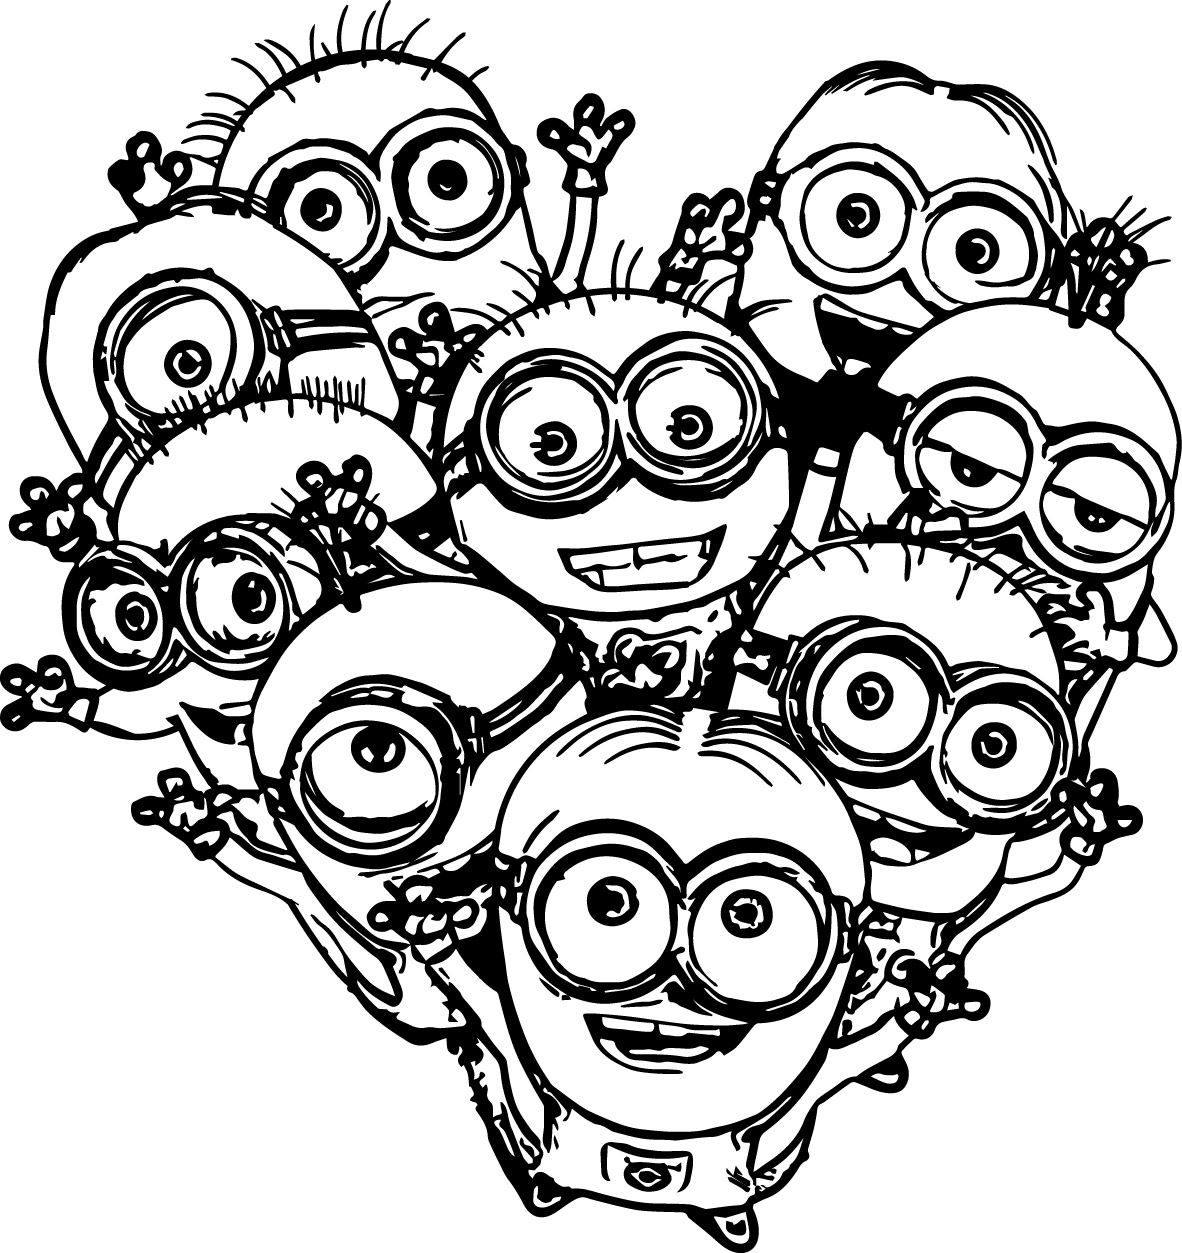 Multiple Minions Coloring Pages | Wecoloringpage.com